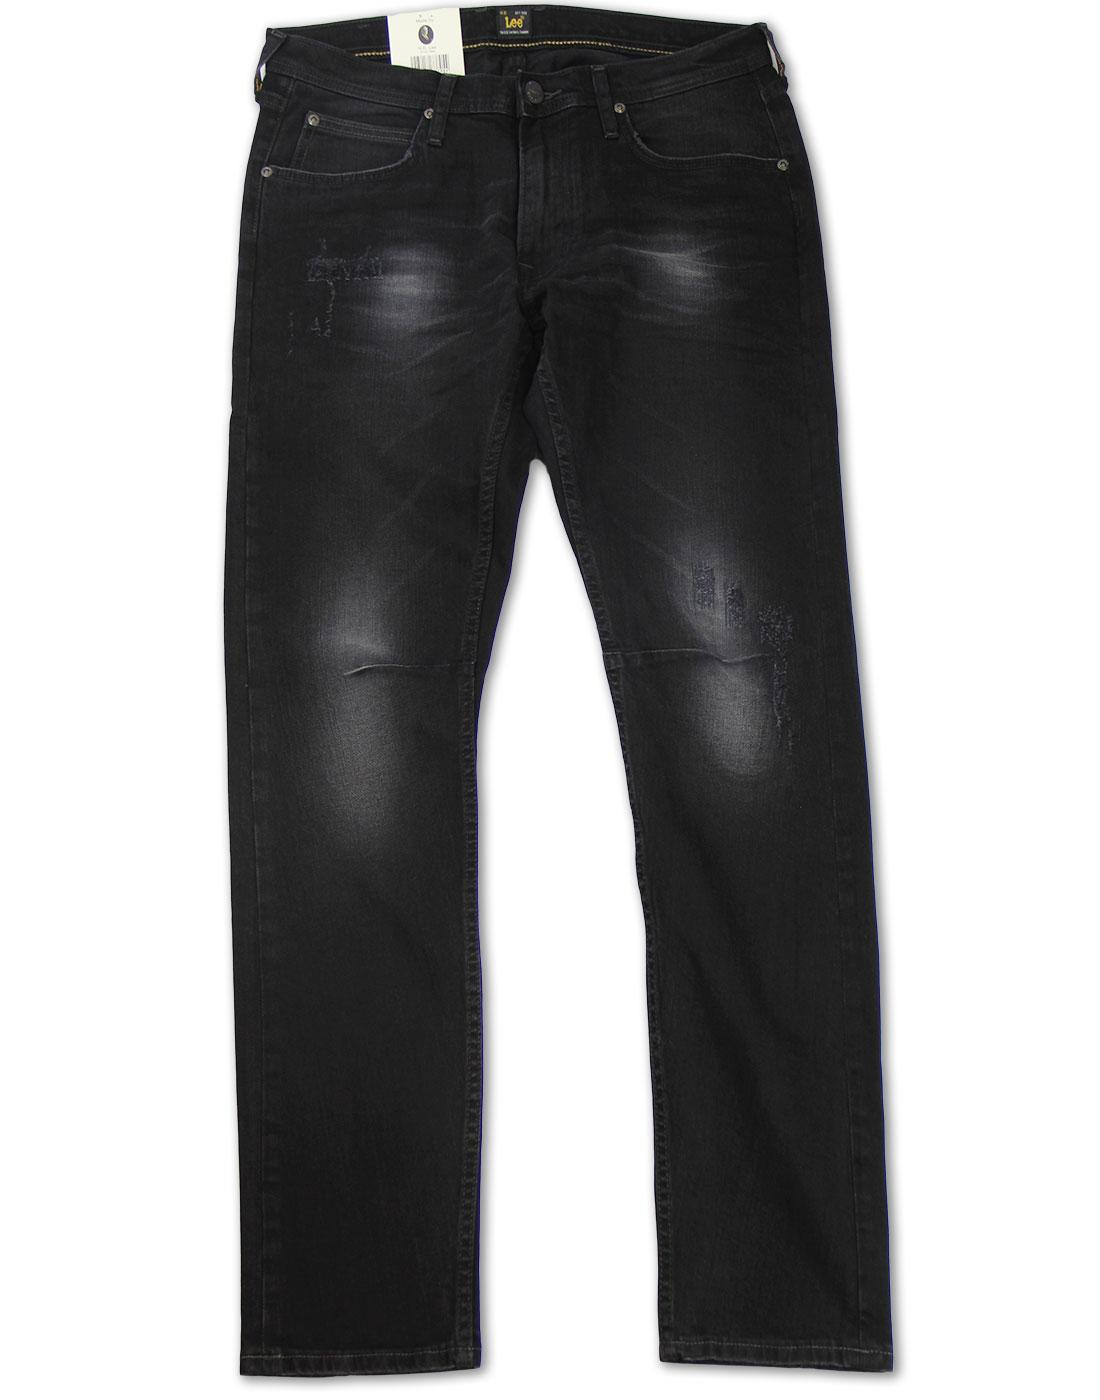 LEE Luke Dart Retro Trashed Slim Tapered Jeans